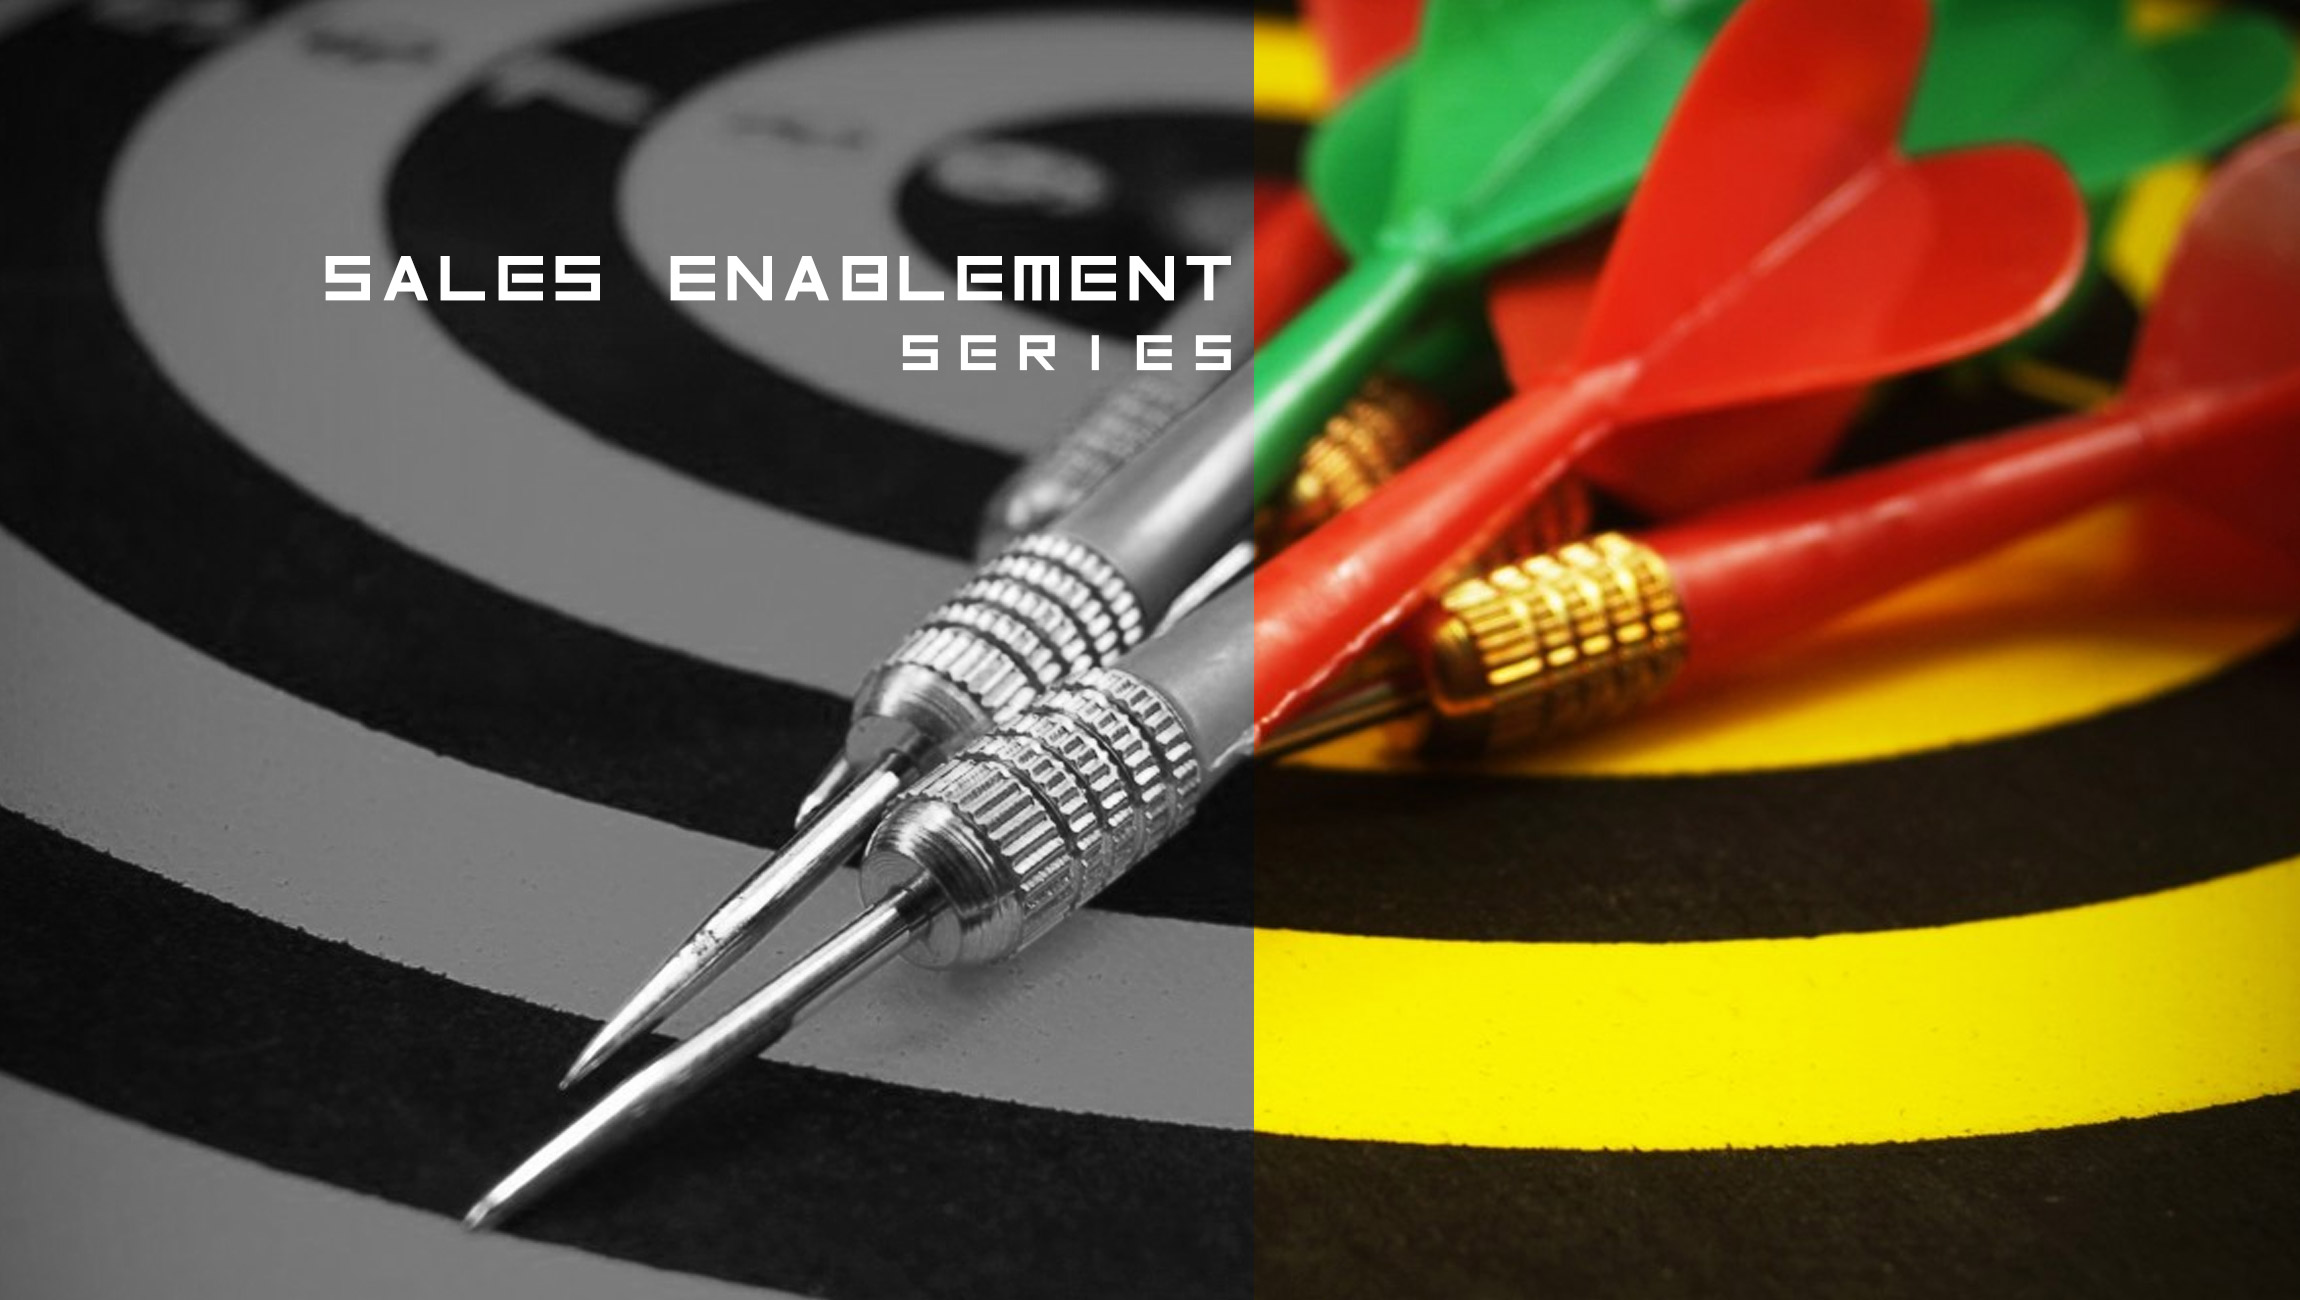 Five Definitions You Should Know About Sales Enablement for B2B Success